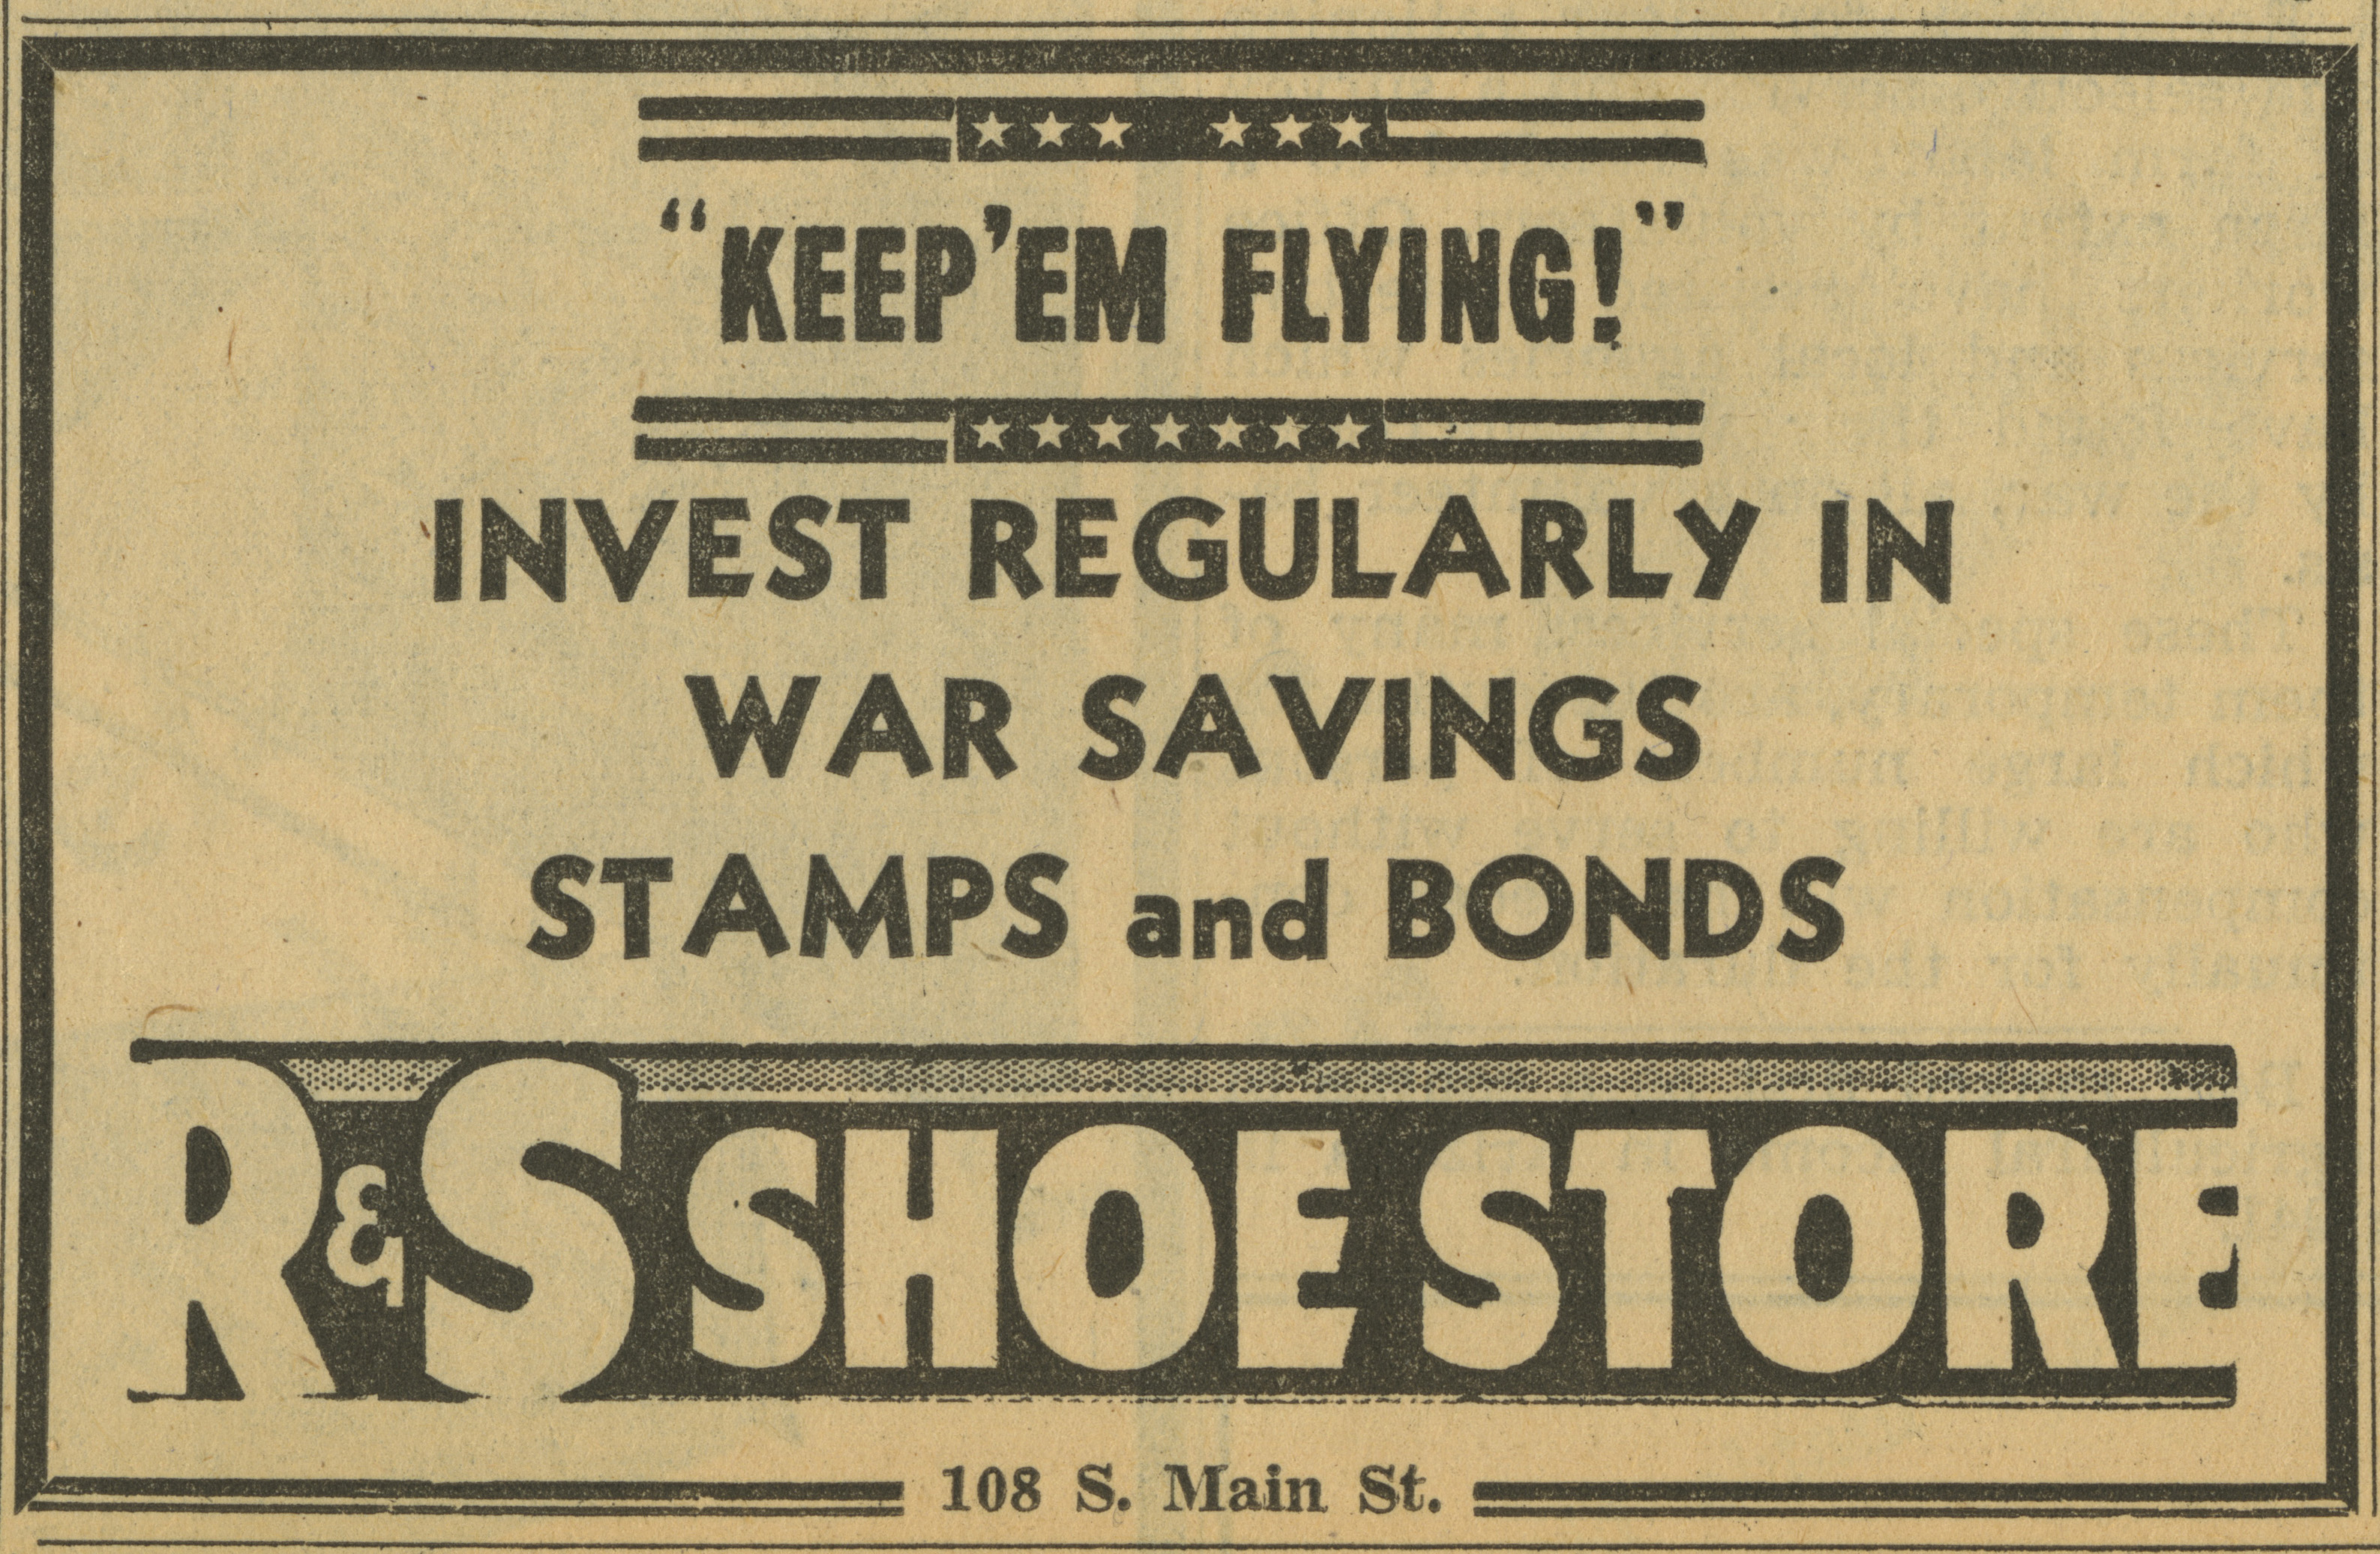 R & S Shoe Store [advertisement] image